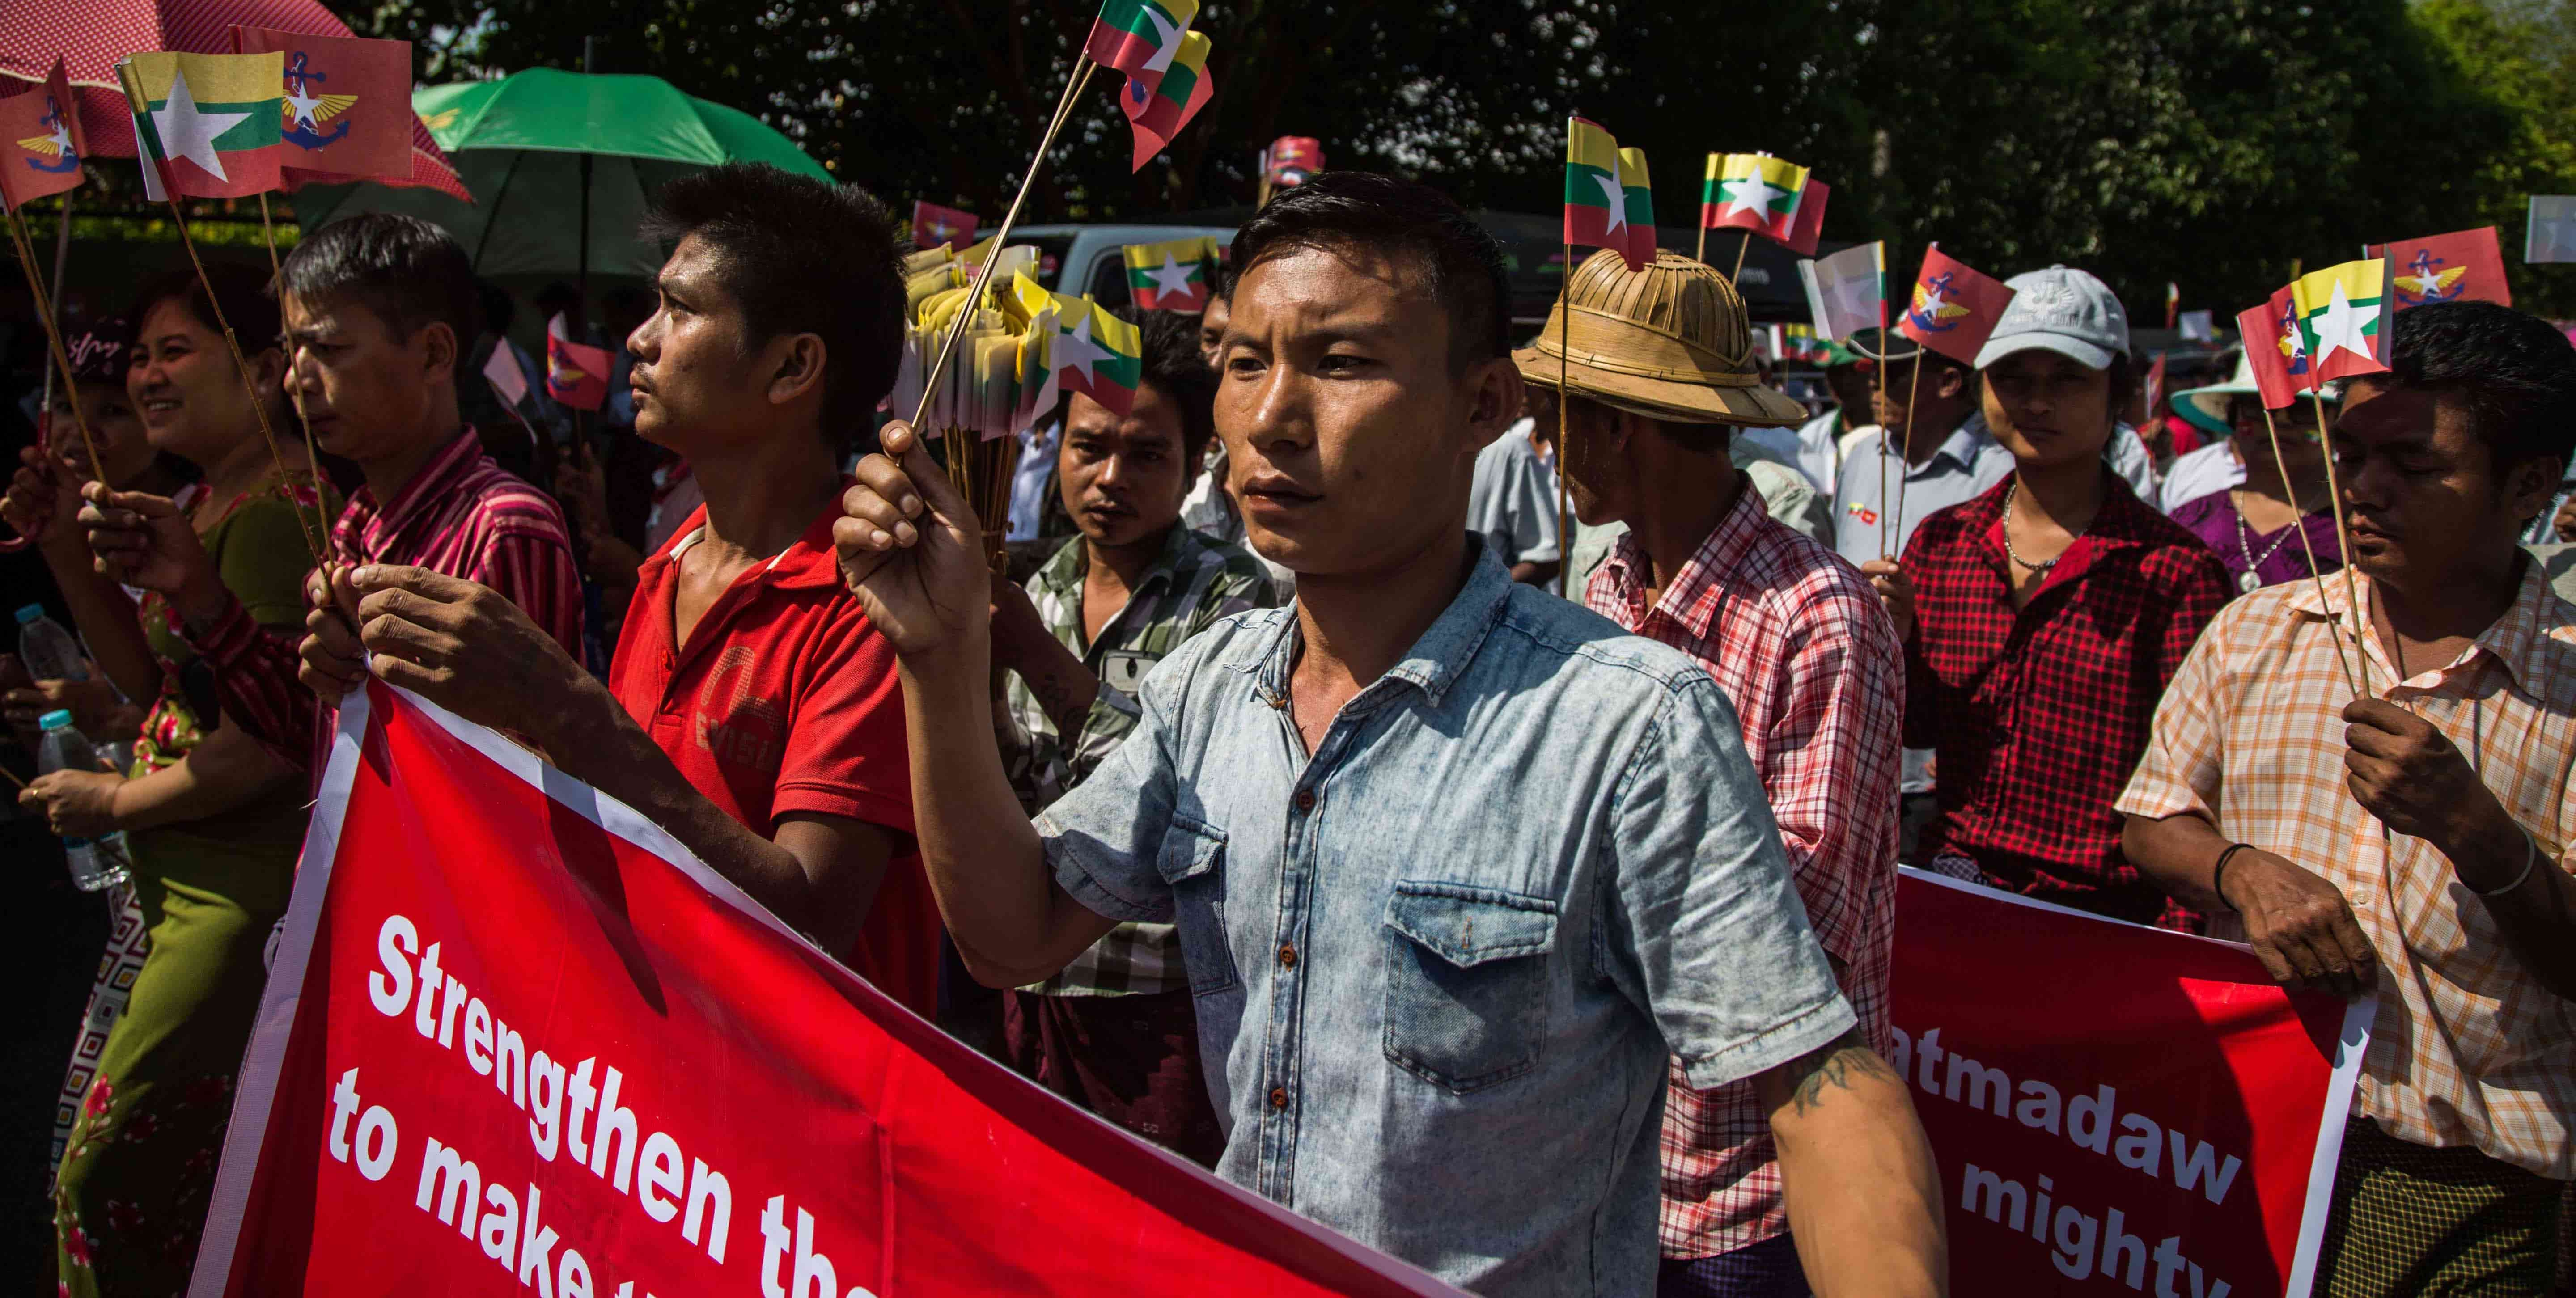 Pro-Tatmadaw demonstrators in Yangon, Myanmar, October 2017 (Photo: Lauren DeCicca/Getty Images)